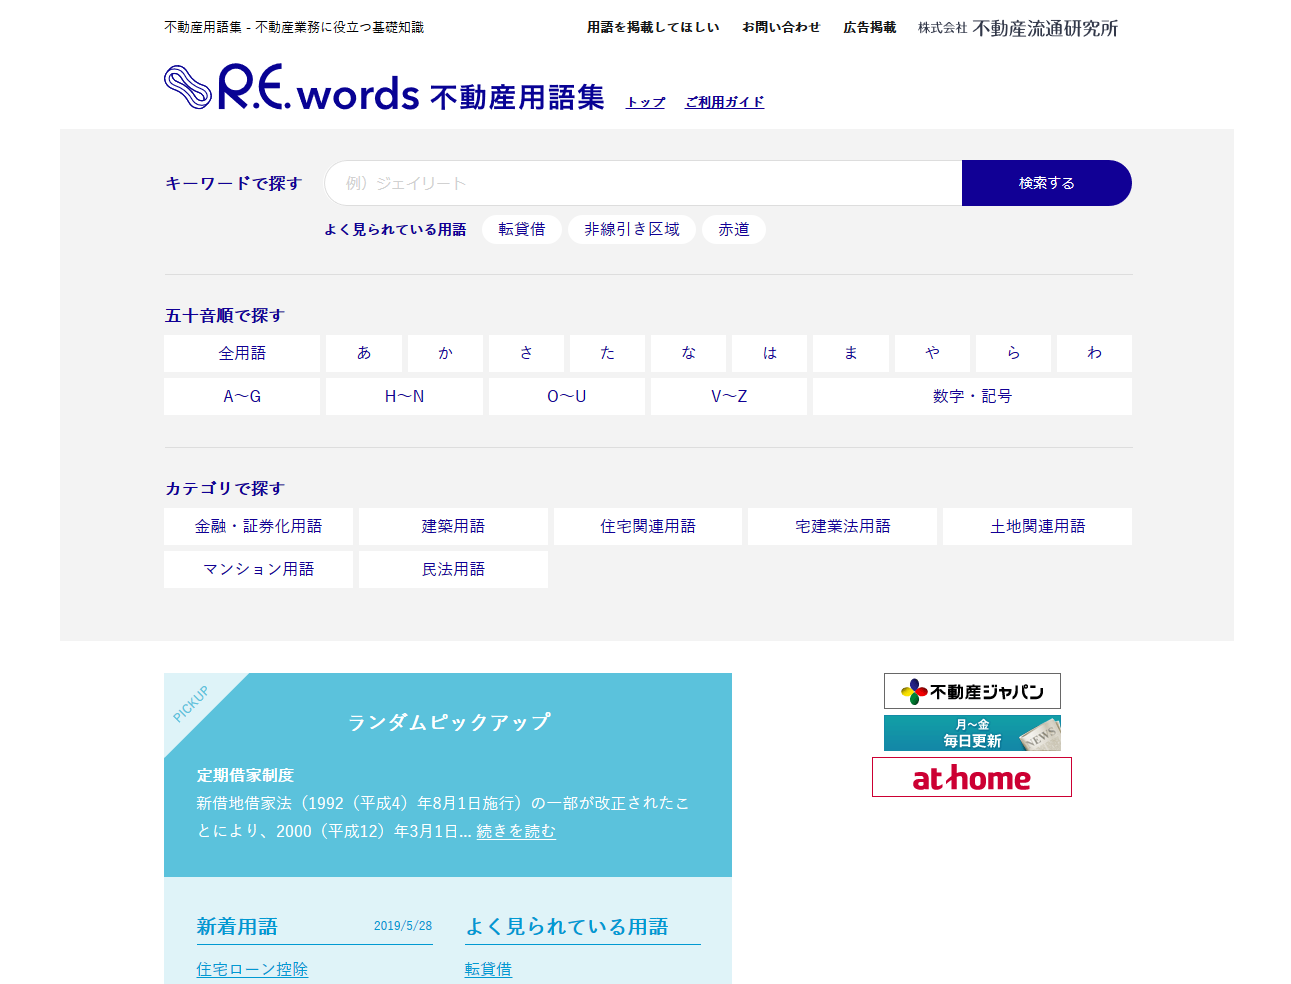 R.E.words不動産用語集